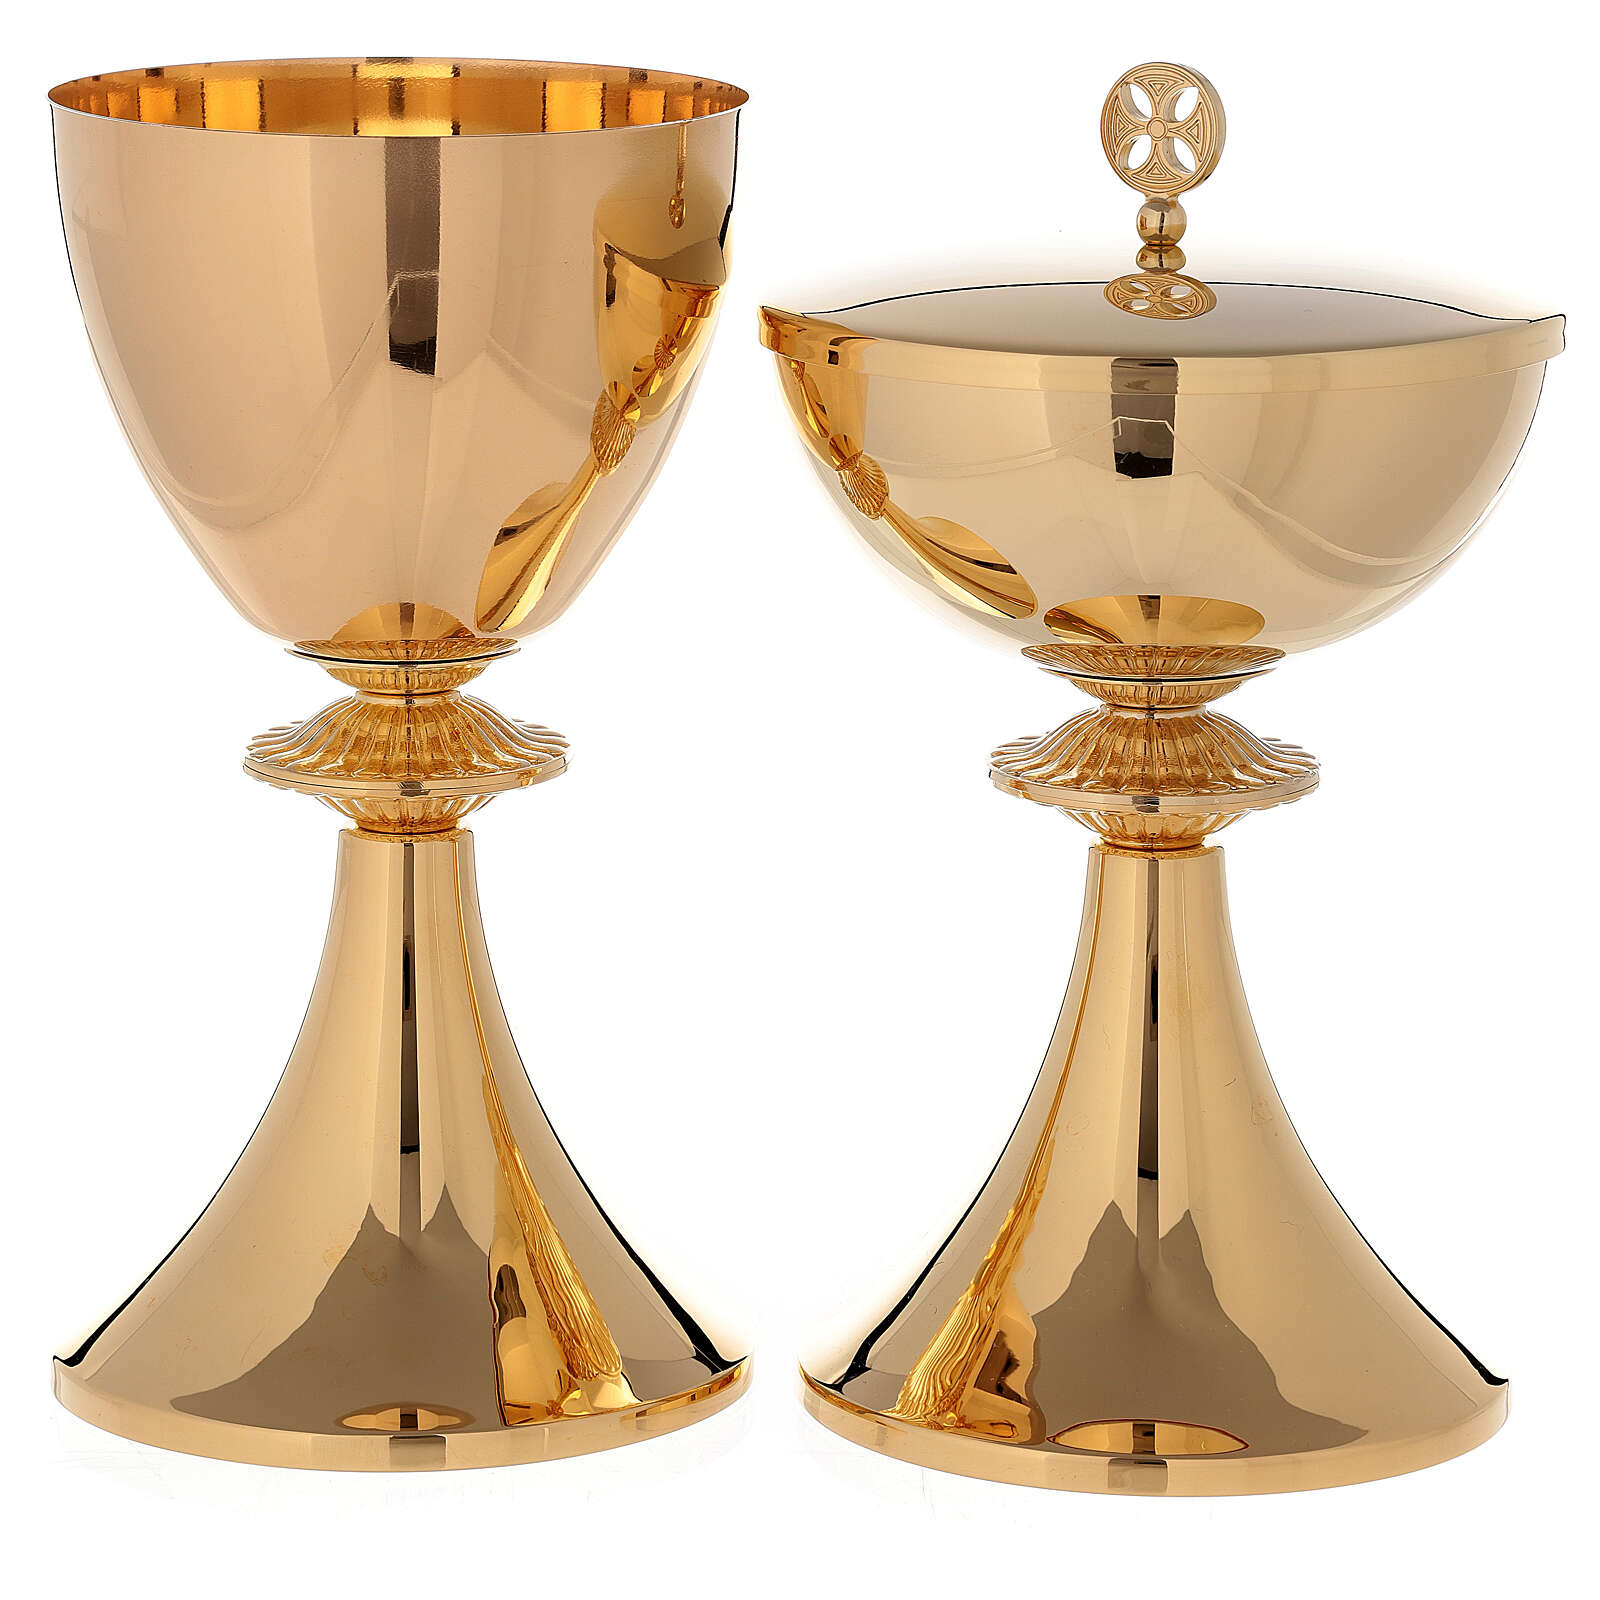 Chalice and Pyx in 24k polished golden brass with cast knot 4